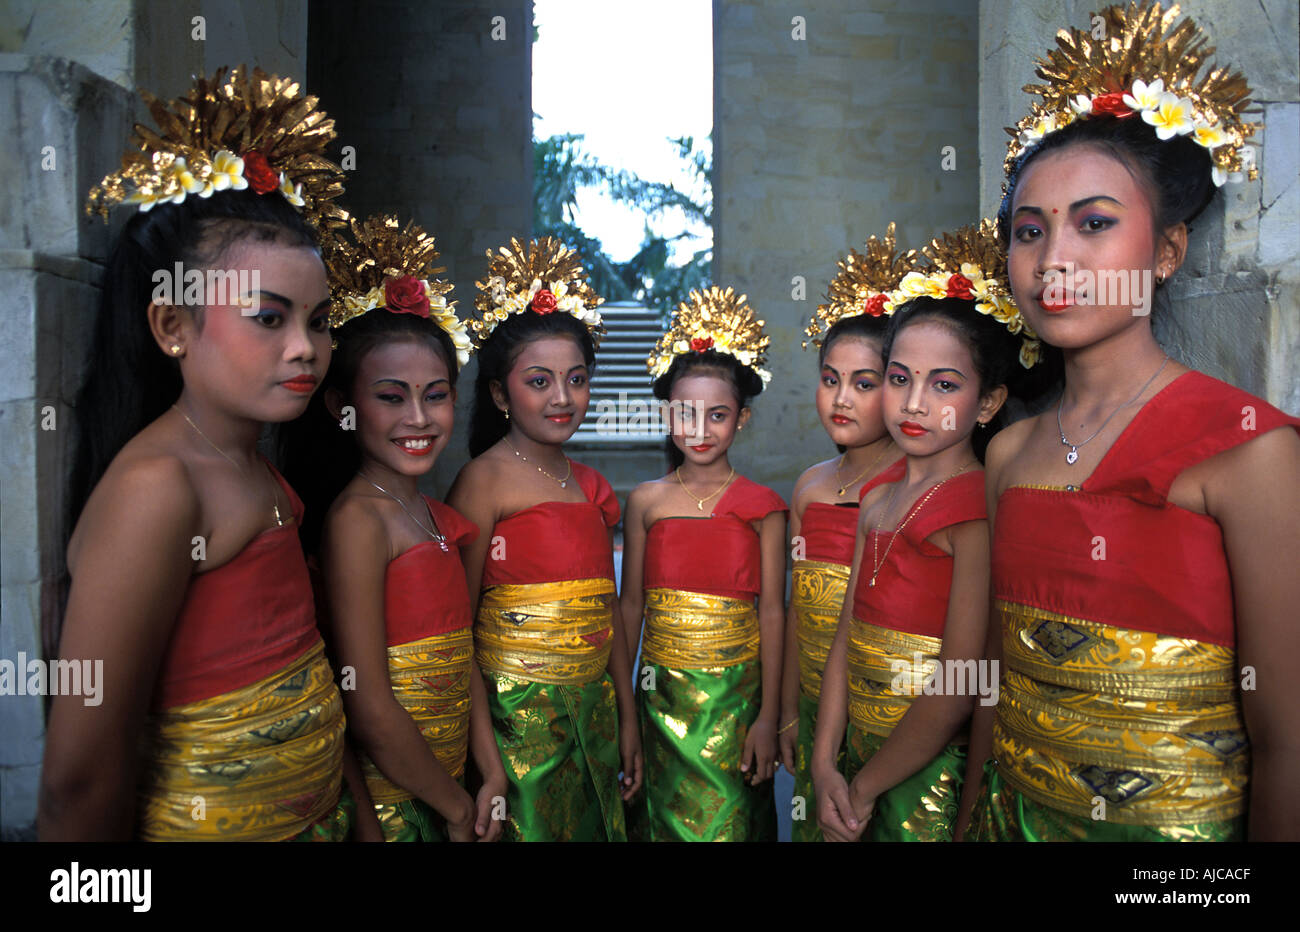 A group of young brightly dressed Balinese dancers Getting ready to perform Ubud Indonesia - Stock Image